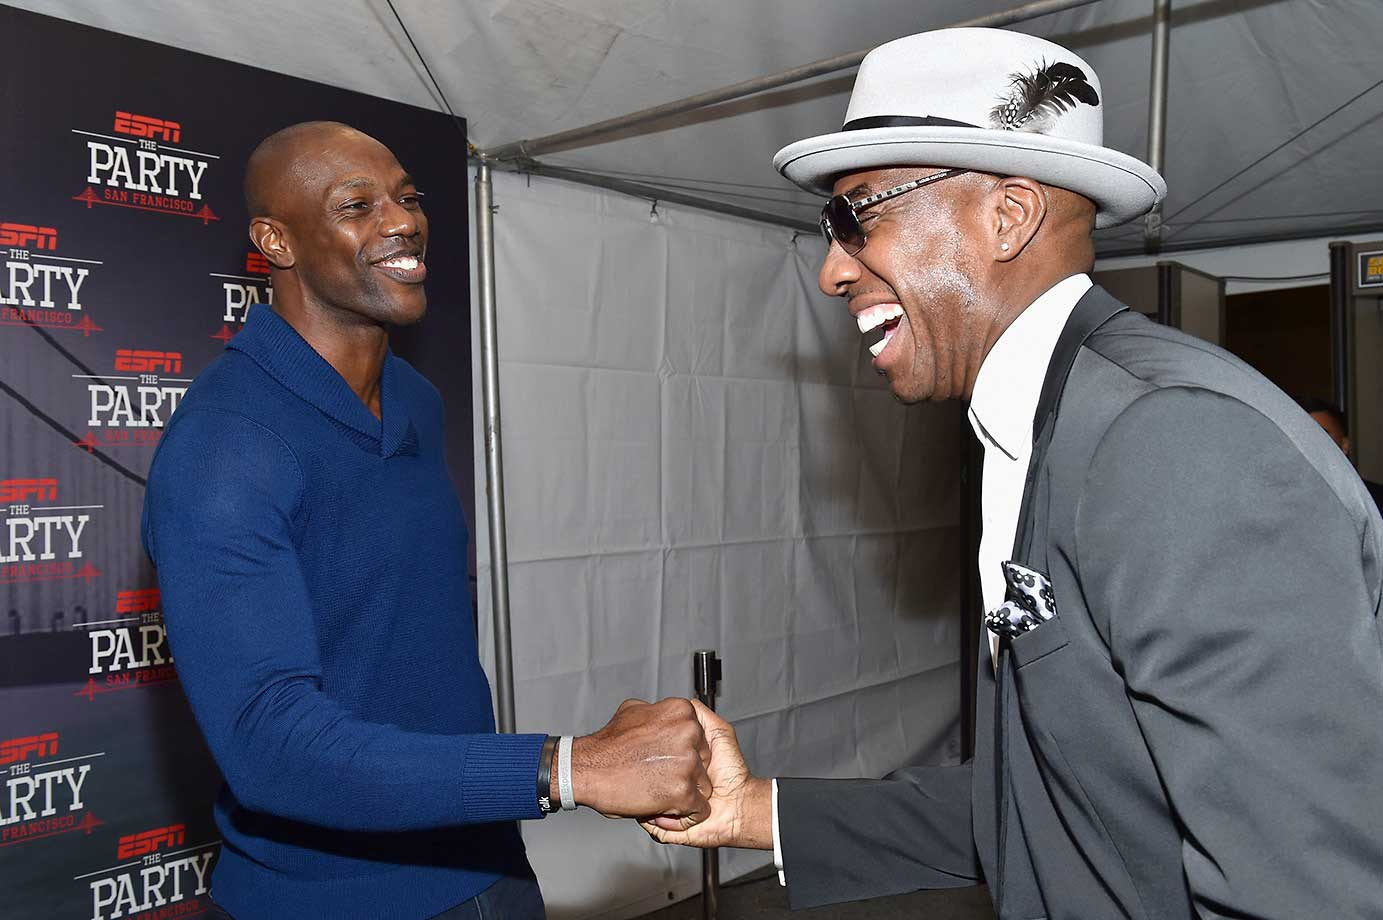 Terrell Owens and actor/comedian J. B. Smoove :: ESPN The Party